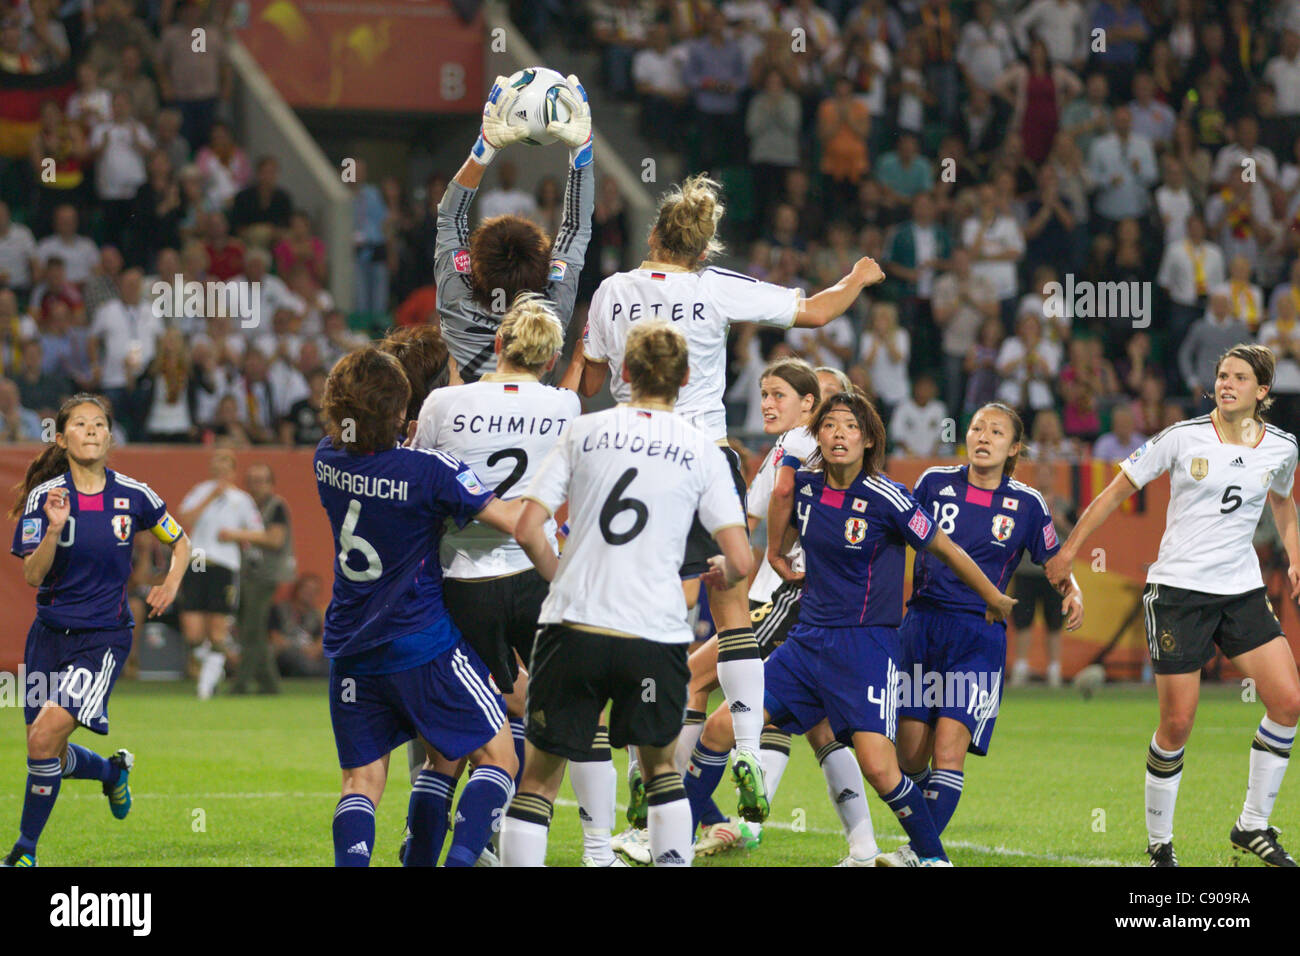 Goalkeeper Ayumi Kaihori of Japan leaps to make a save against Germany during a 2011 FIFA Women's World Cup - Stock Image